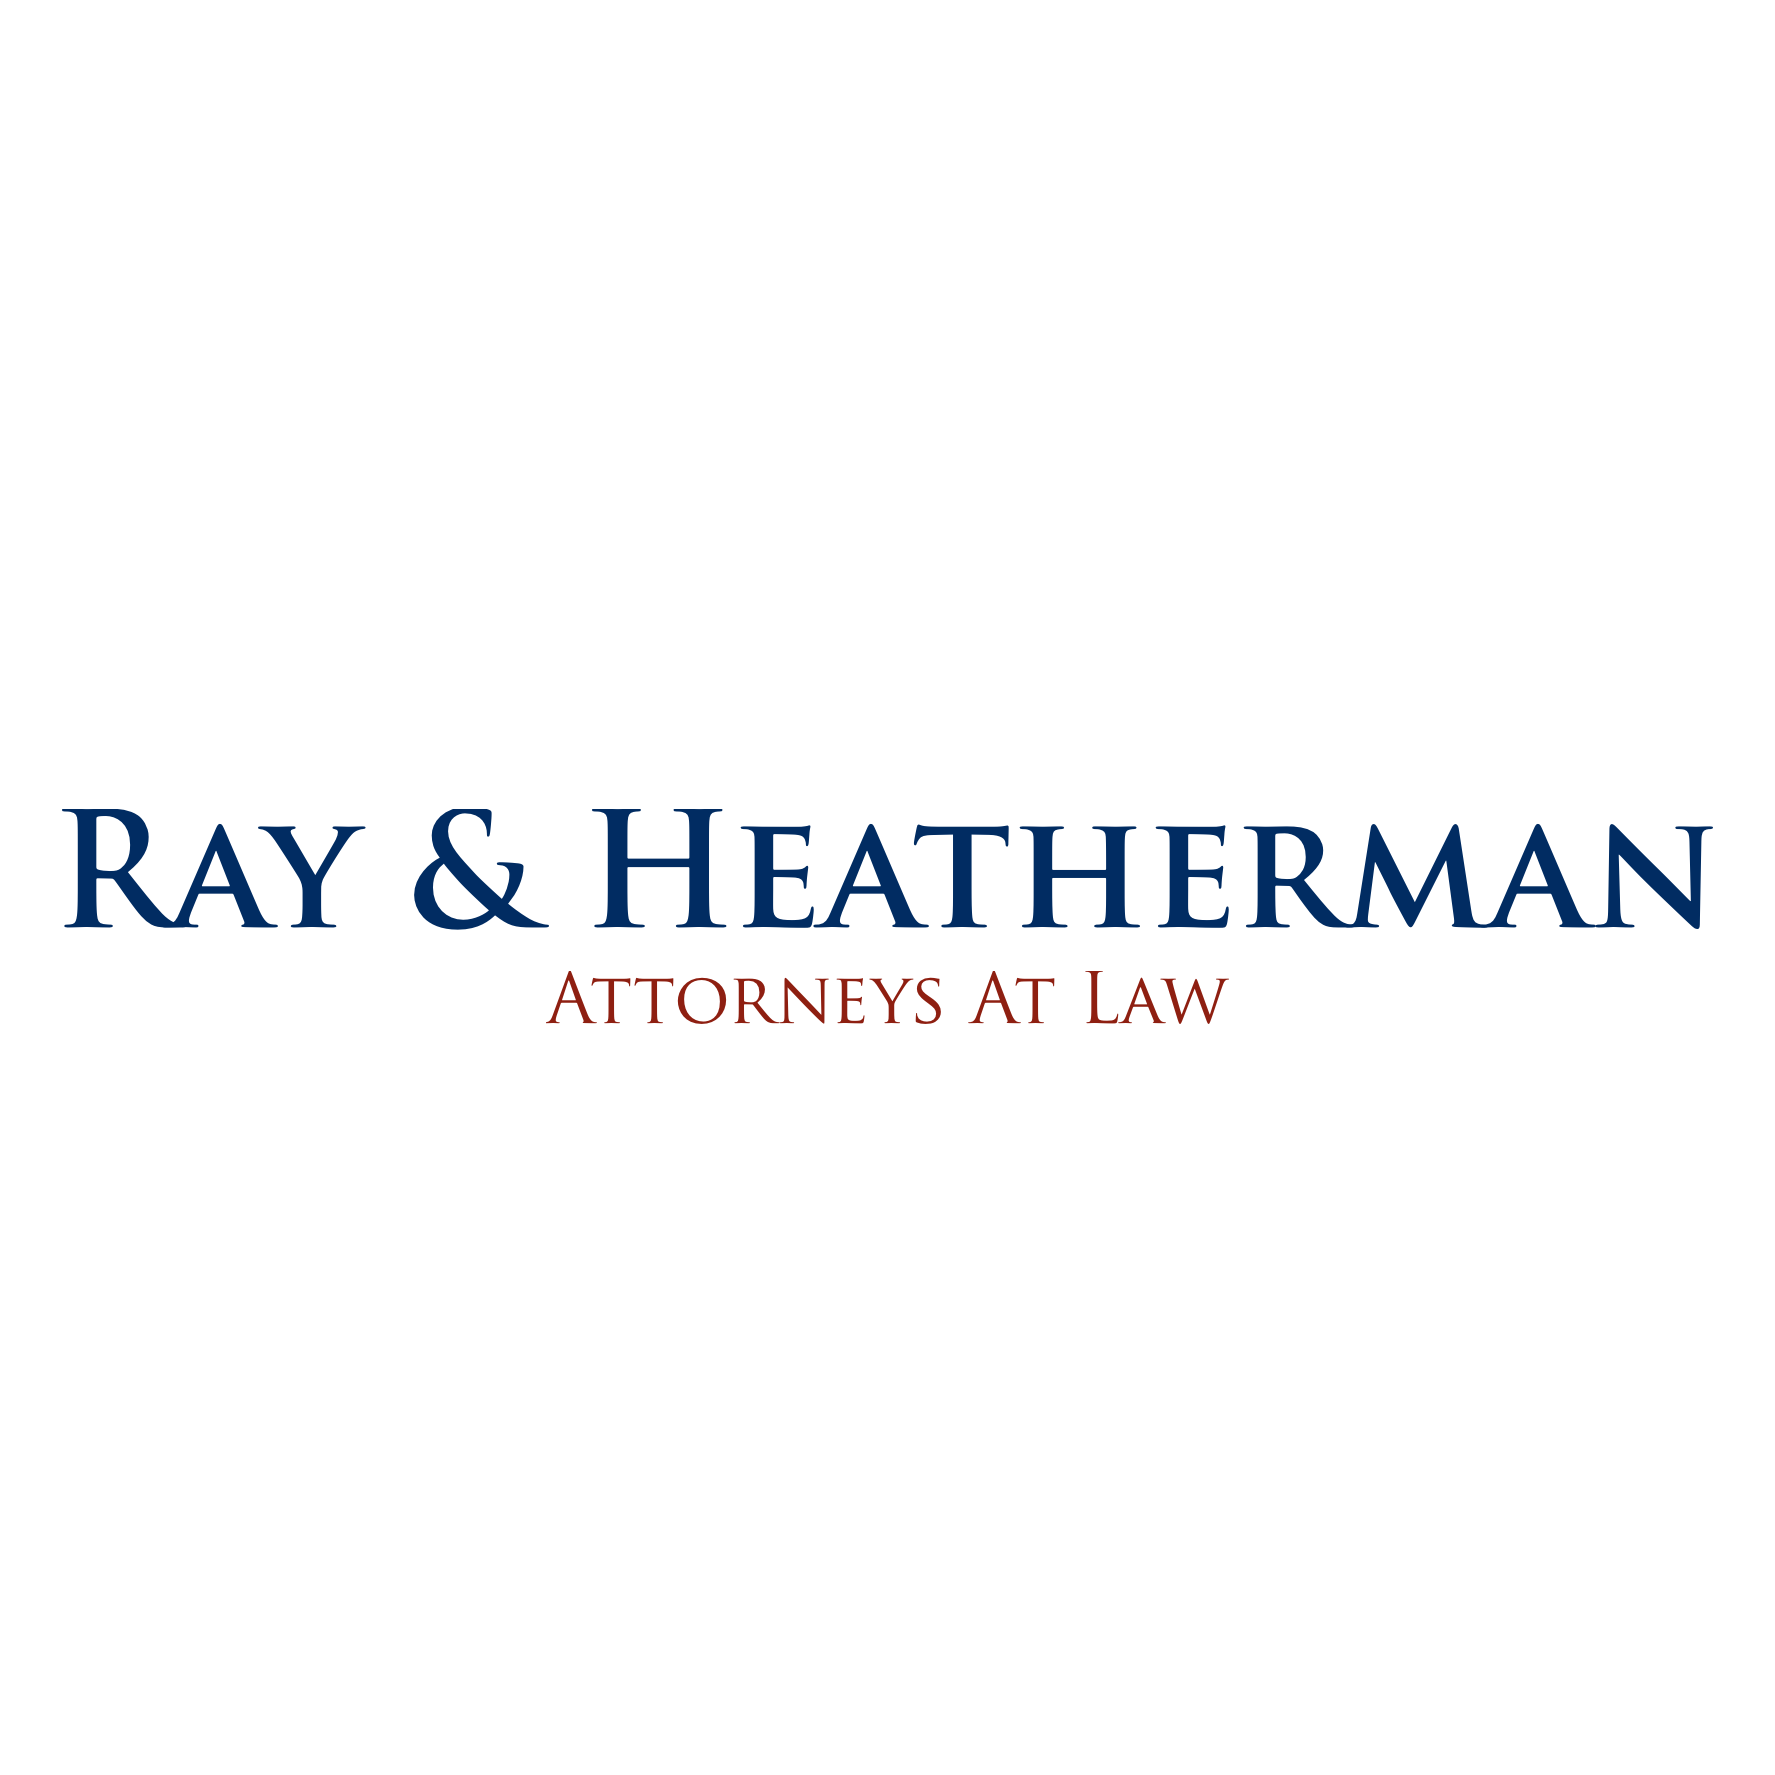 Ray & Heatherman Law, PLLC - Fort Collins, CO - Business Page